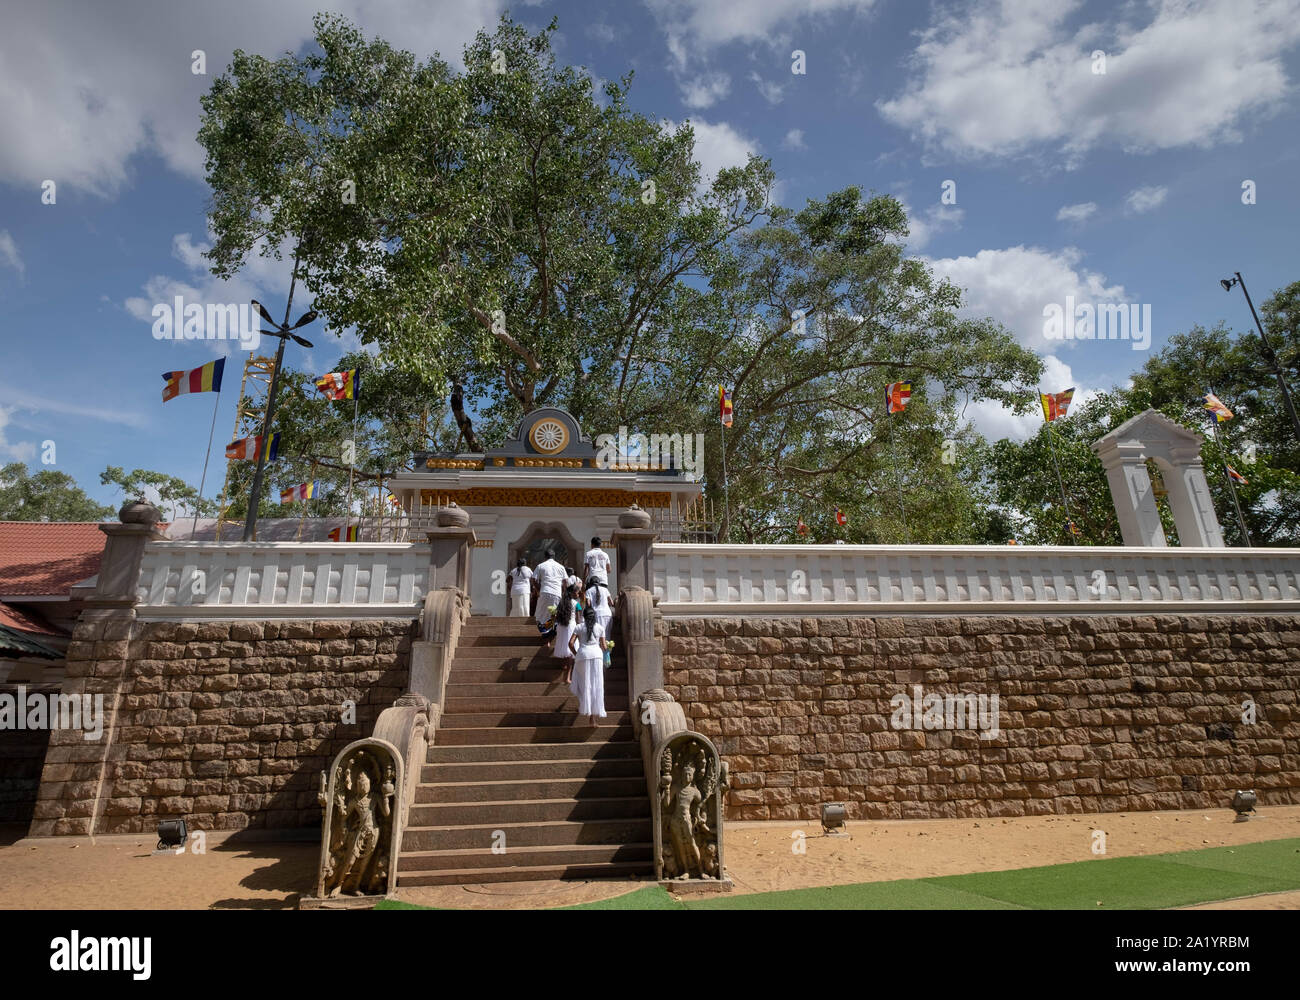 Anuradhapura/ Sri Lanka - AUGUST 07, 2019: Unspecific people walking to the Bodhi tree. The temple of Sri Maha Bodhi the oldest planted tree, Anuradha Stock Photo